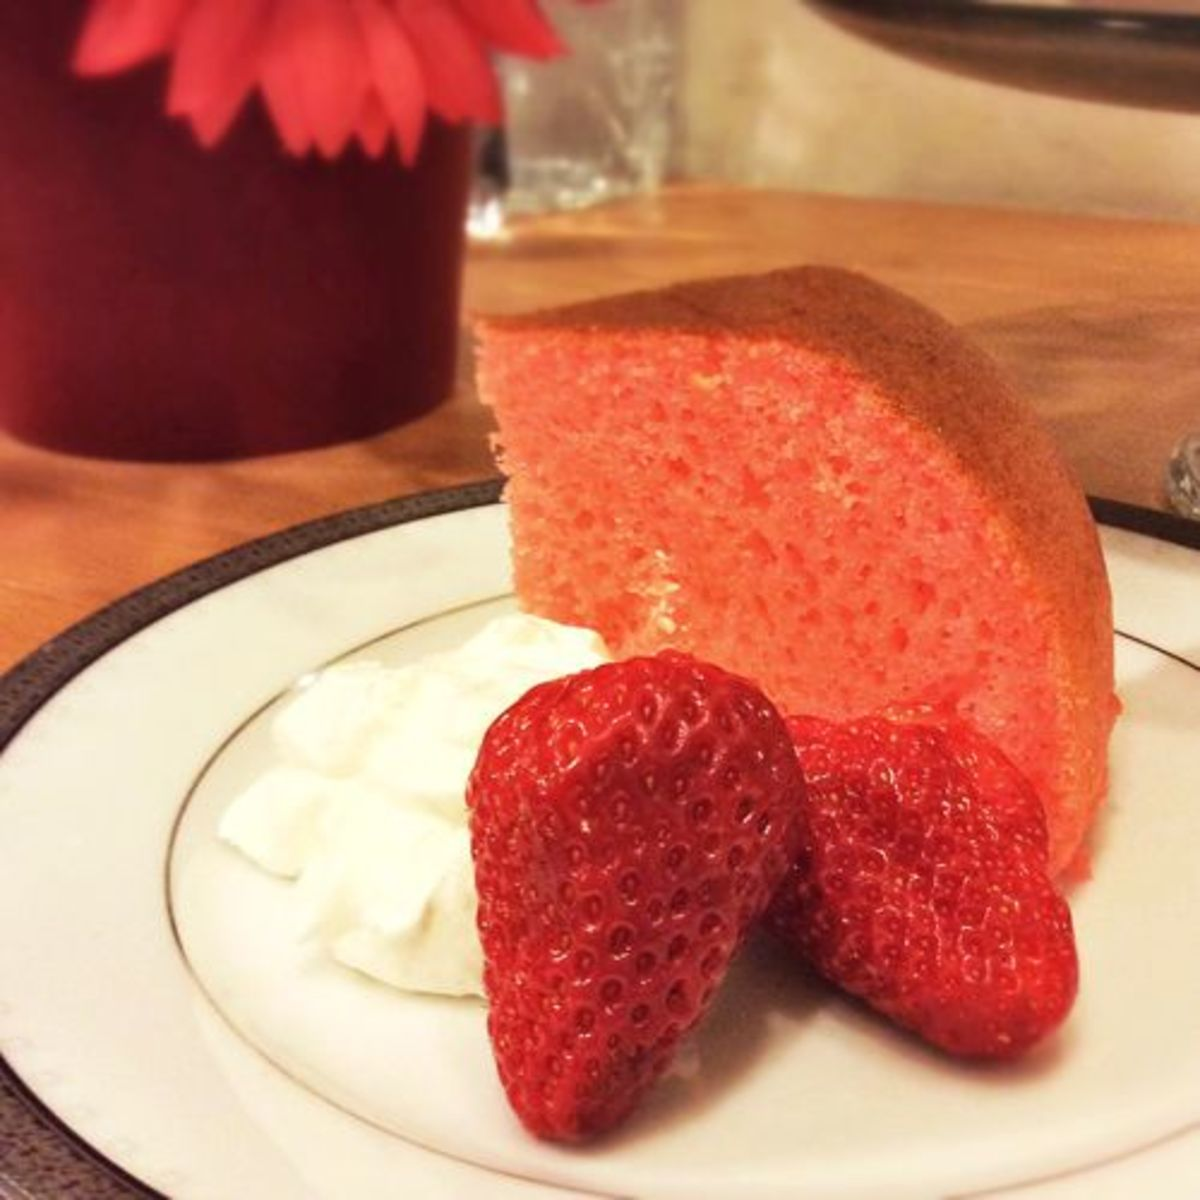 Sliced and placed on a plate with a strawberry and a dollop of whipped cream. Pure decadence!